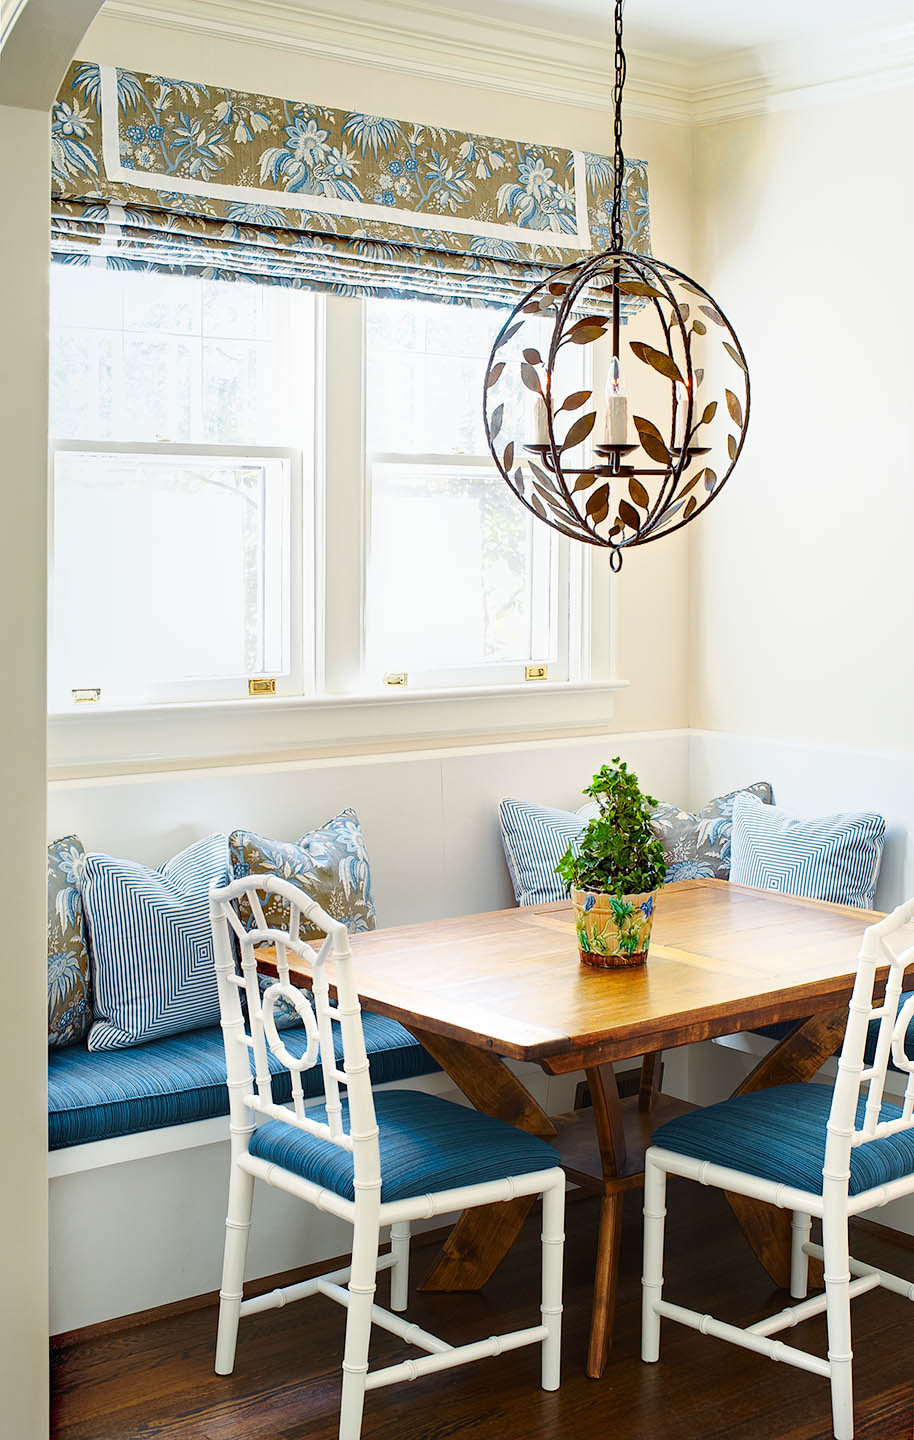 Kid Friendly Banquette